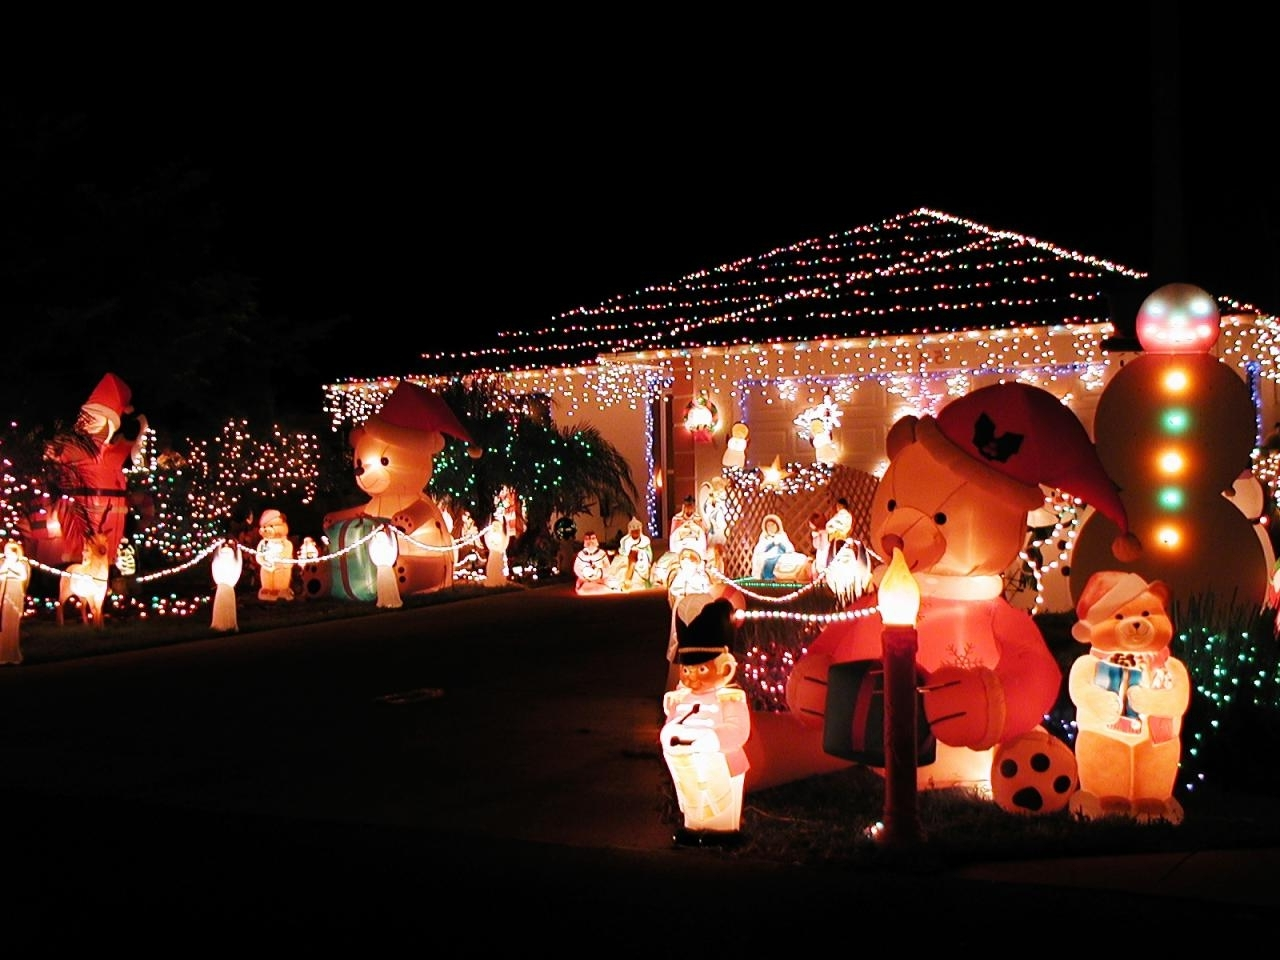 Diy With Regard To Hanging Outdoor Holiday Lights (View 4 of 20)